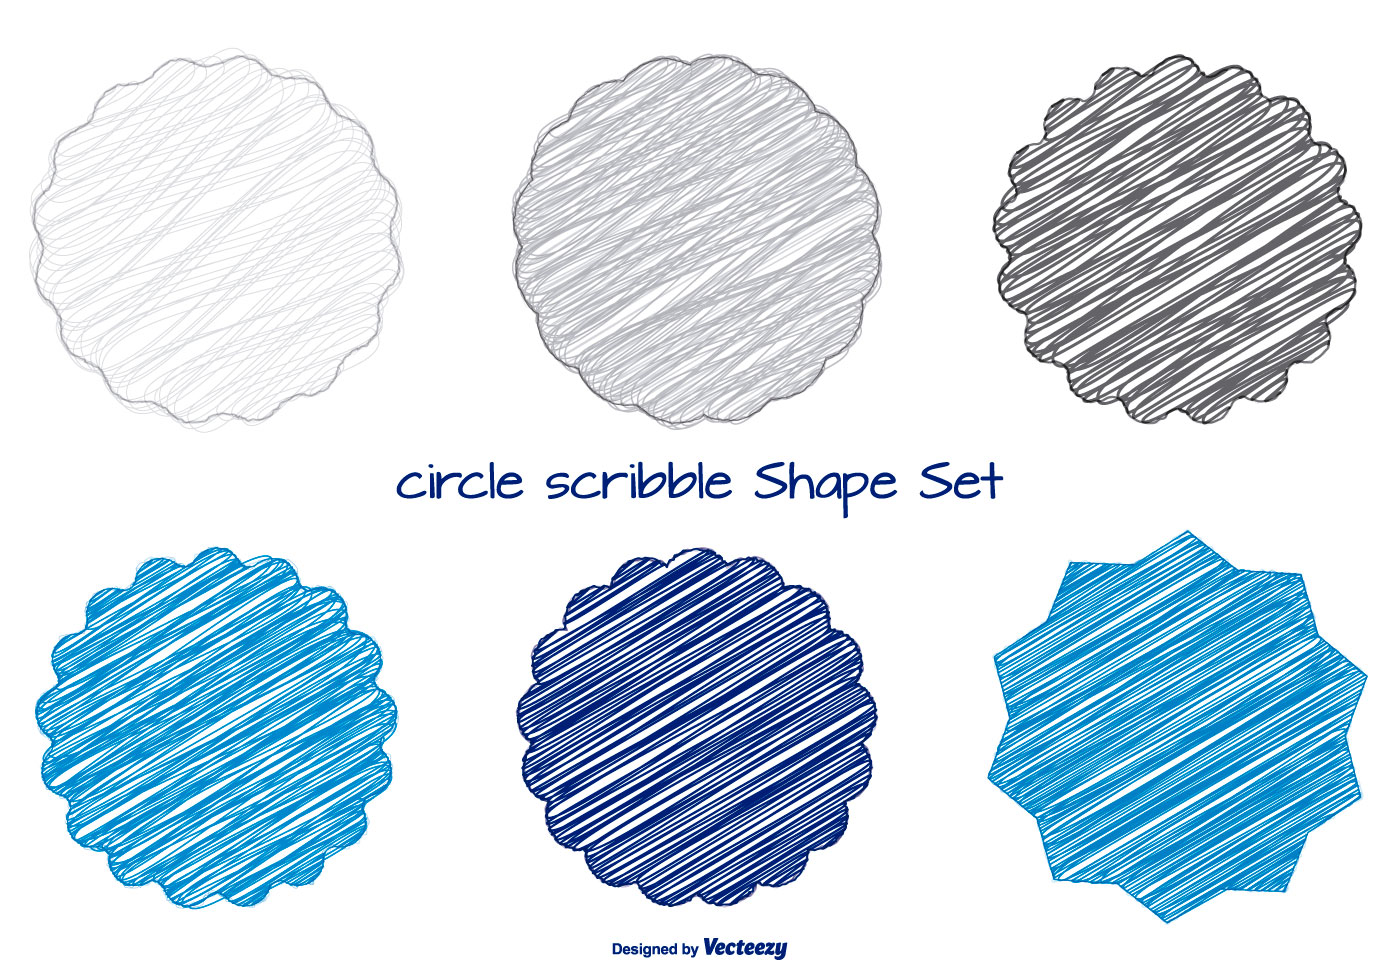 Scribble Drawing Question : Fun scribble shapes set download free vector art stock